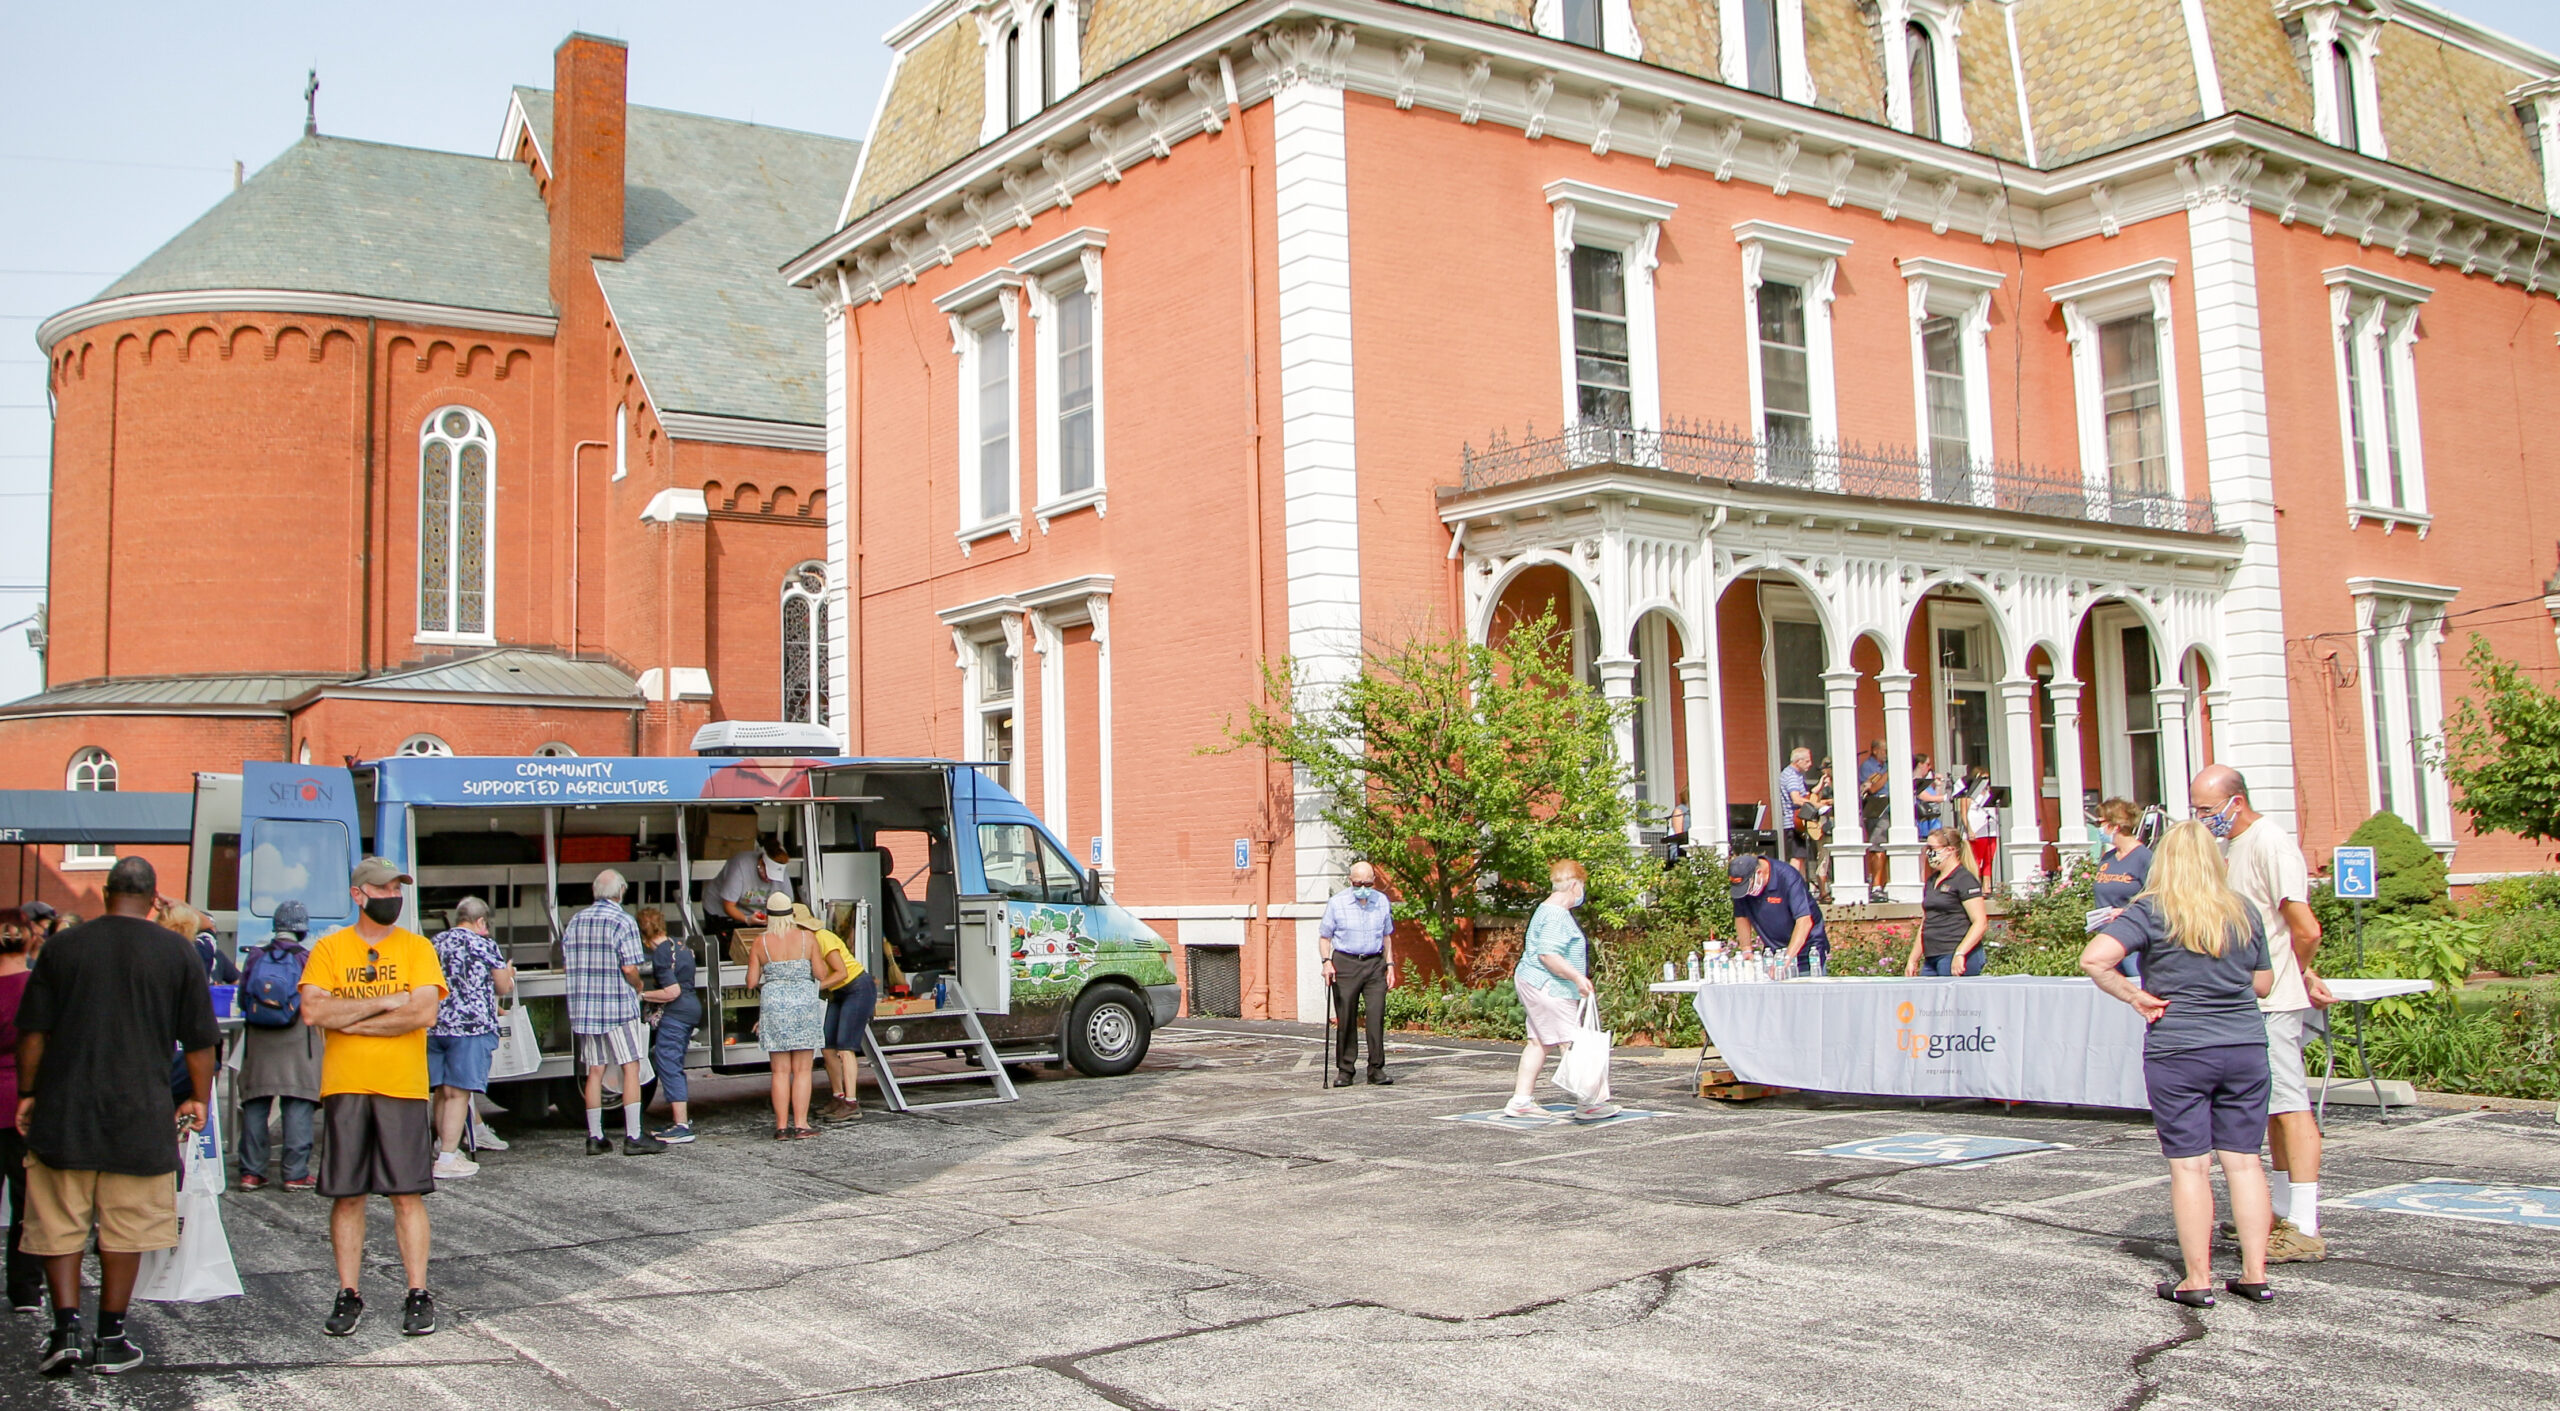 Neighbors of All Saints Parish's St. Anthony Campus in Evansville move through the line to get fresh produce during the parish's final 2020 produce giveaway, held Sept. 13. At right, members of the parish's praise band perform from the porch of the rectory. Approximately 30 individuals and families made it through the line during the first five minutes – a testament to the popularity and success of this effort, made possible by All Saints Parish and Seton Harvest of Evansville. The Message photo by Tim Lilley